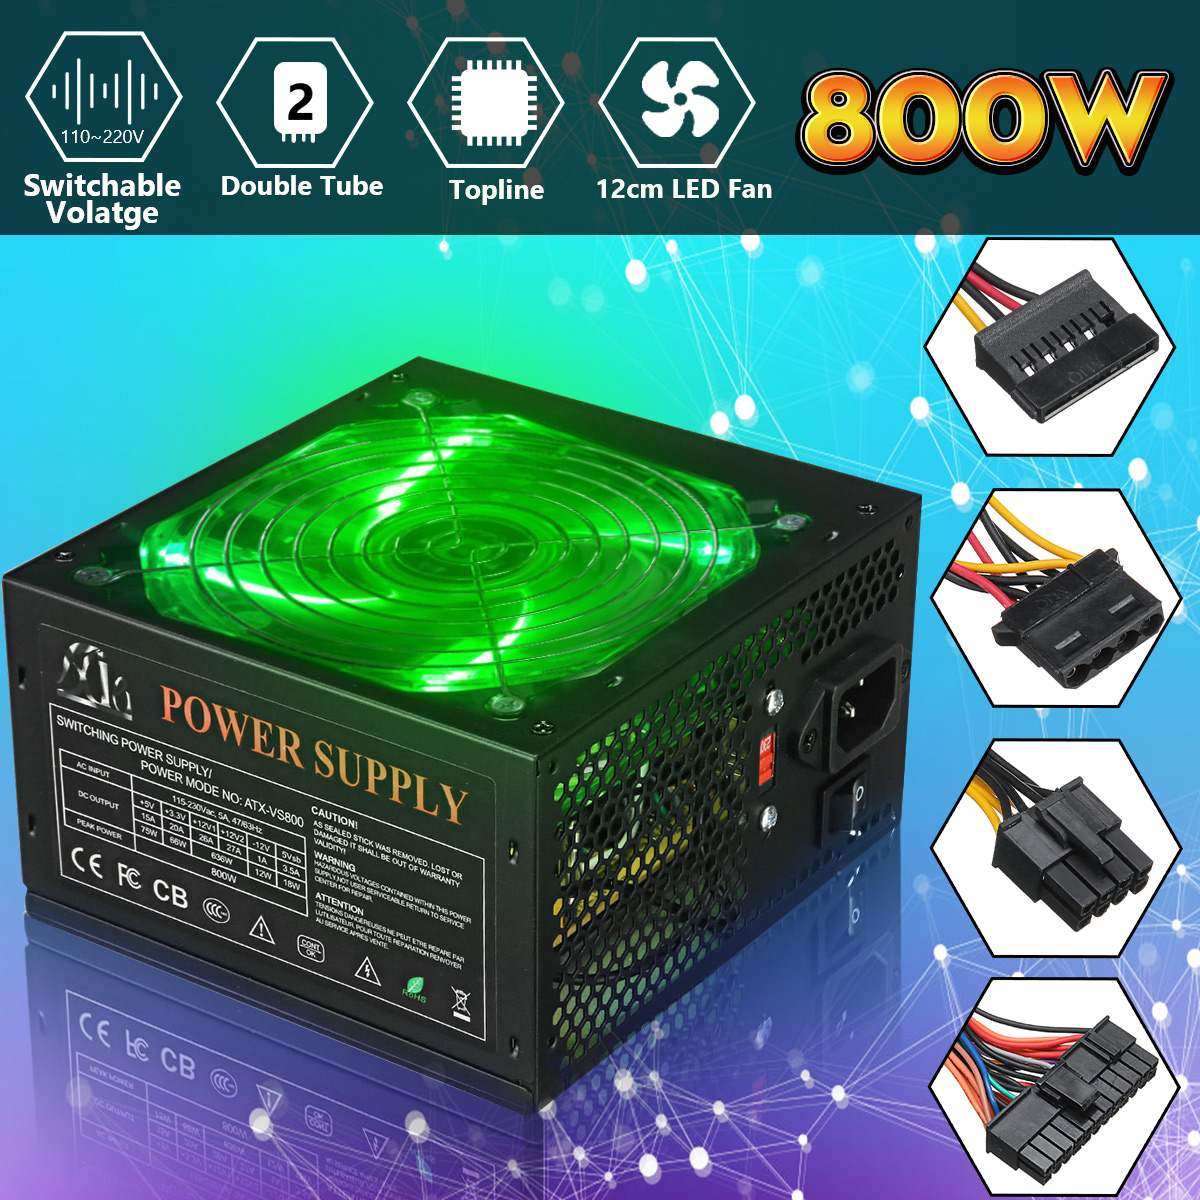 110~220V 800W PC Power Supply 12cm LED Silent Fan With Intelligent Temperature Control Intel AMD ATX 12V For Desktop Computer